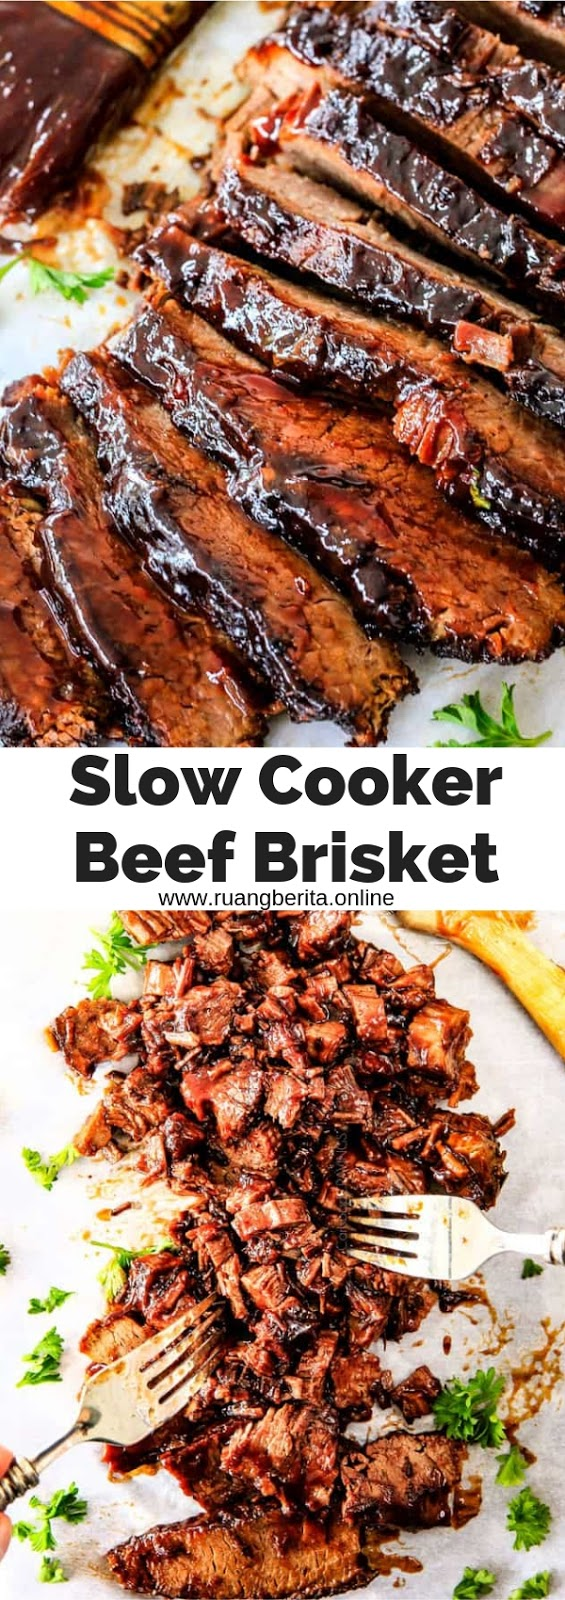 Slow Cooker Beef Brisket #slowcooker #beef #brisket #dinner #maincourse